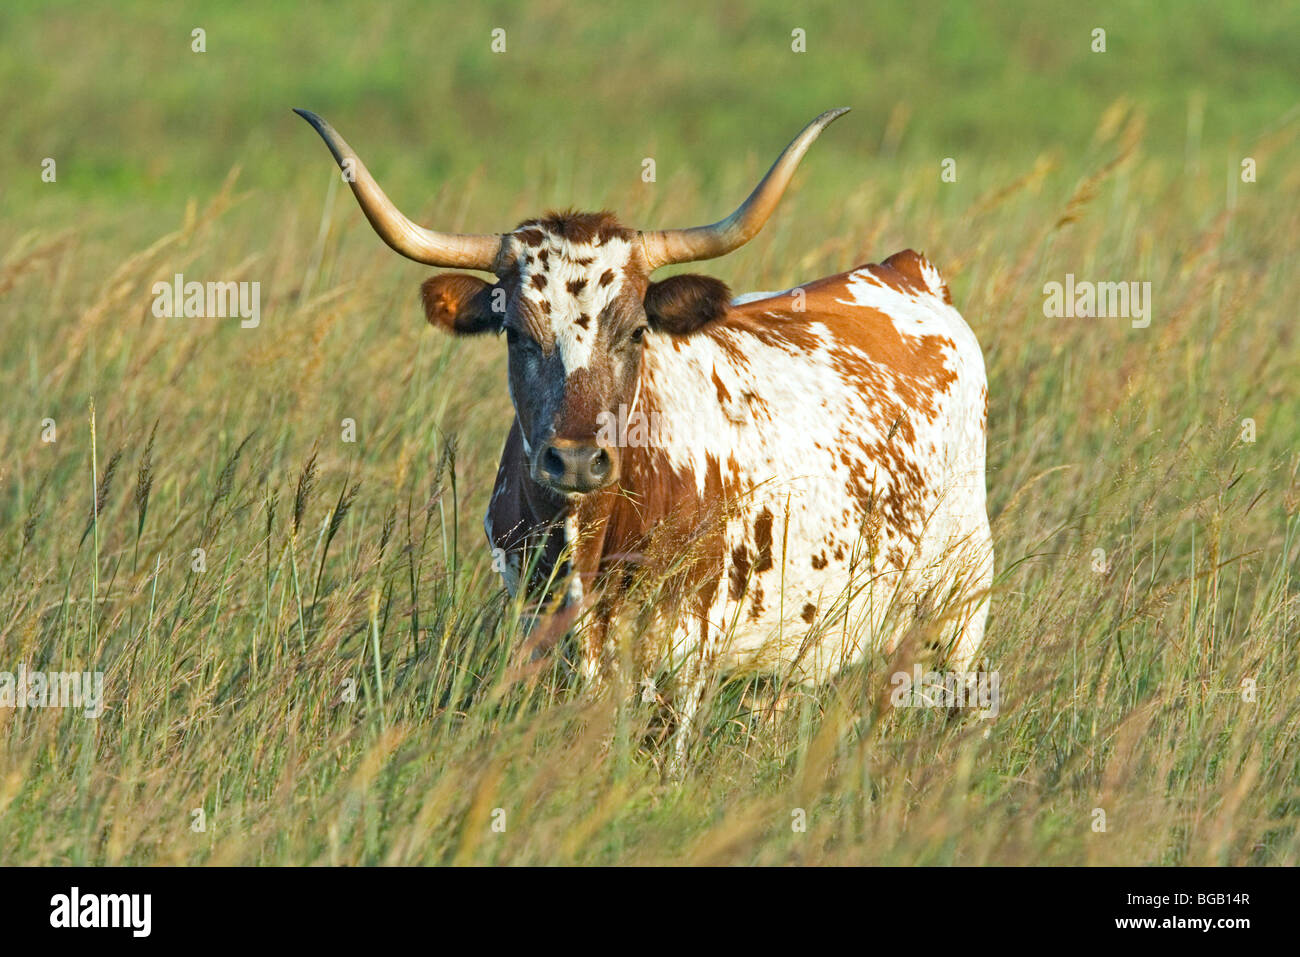 Texas Longhorn or Long-horned Cattle were once the prime beef cattle for North America. With improved breeding of - Stock Image